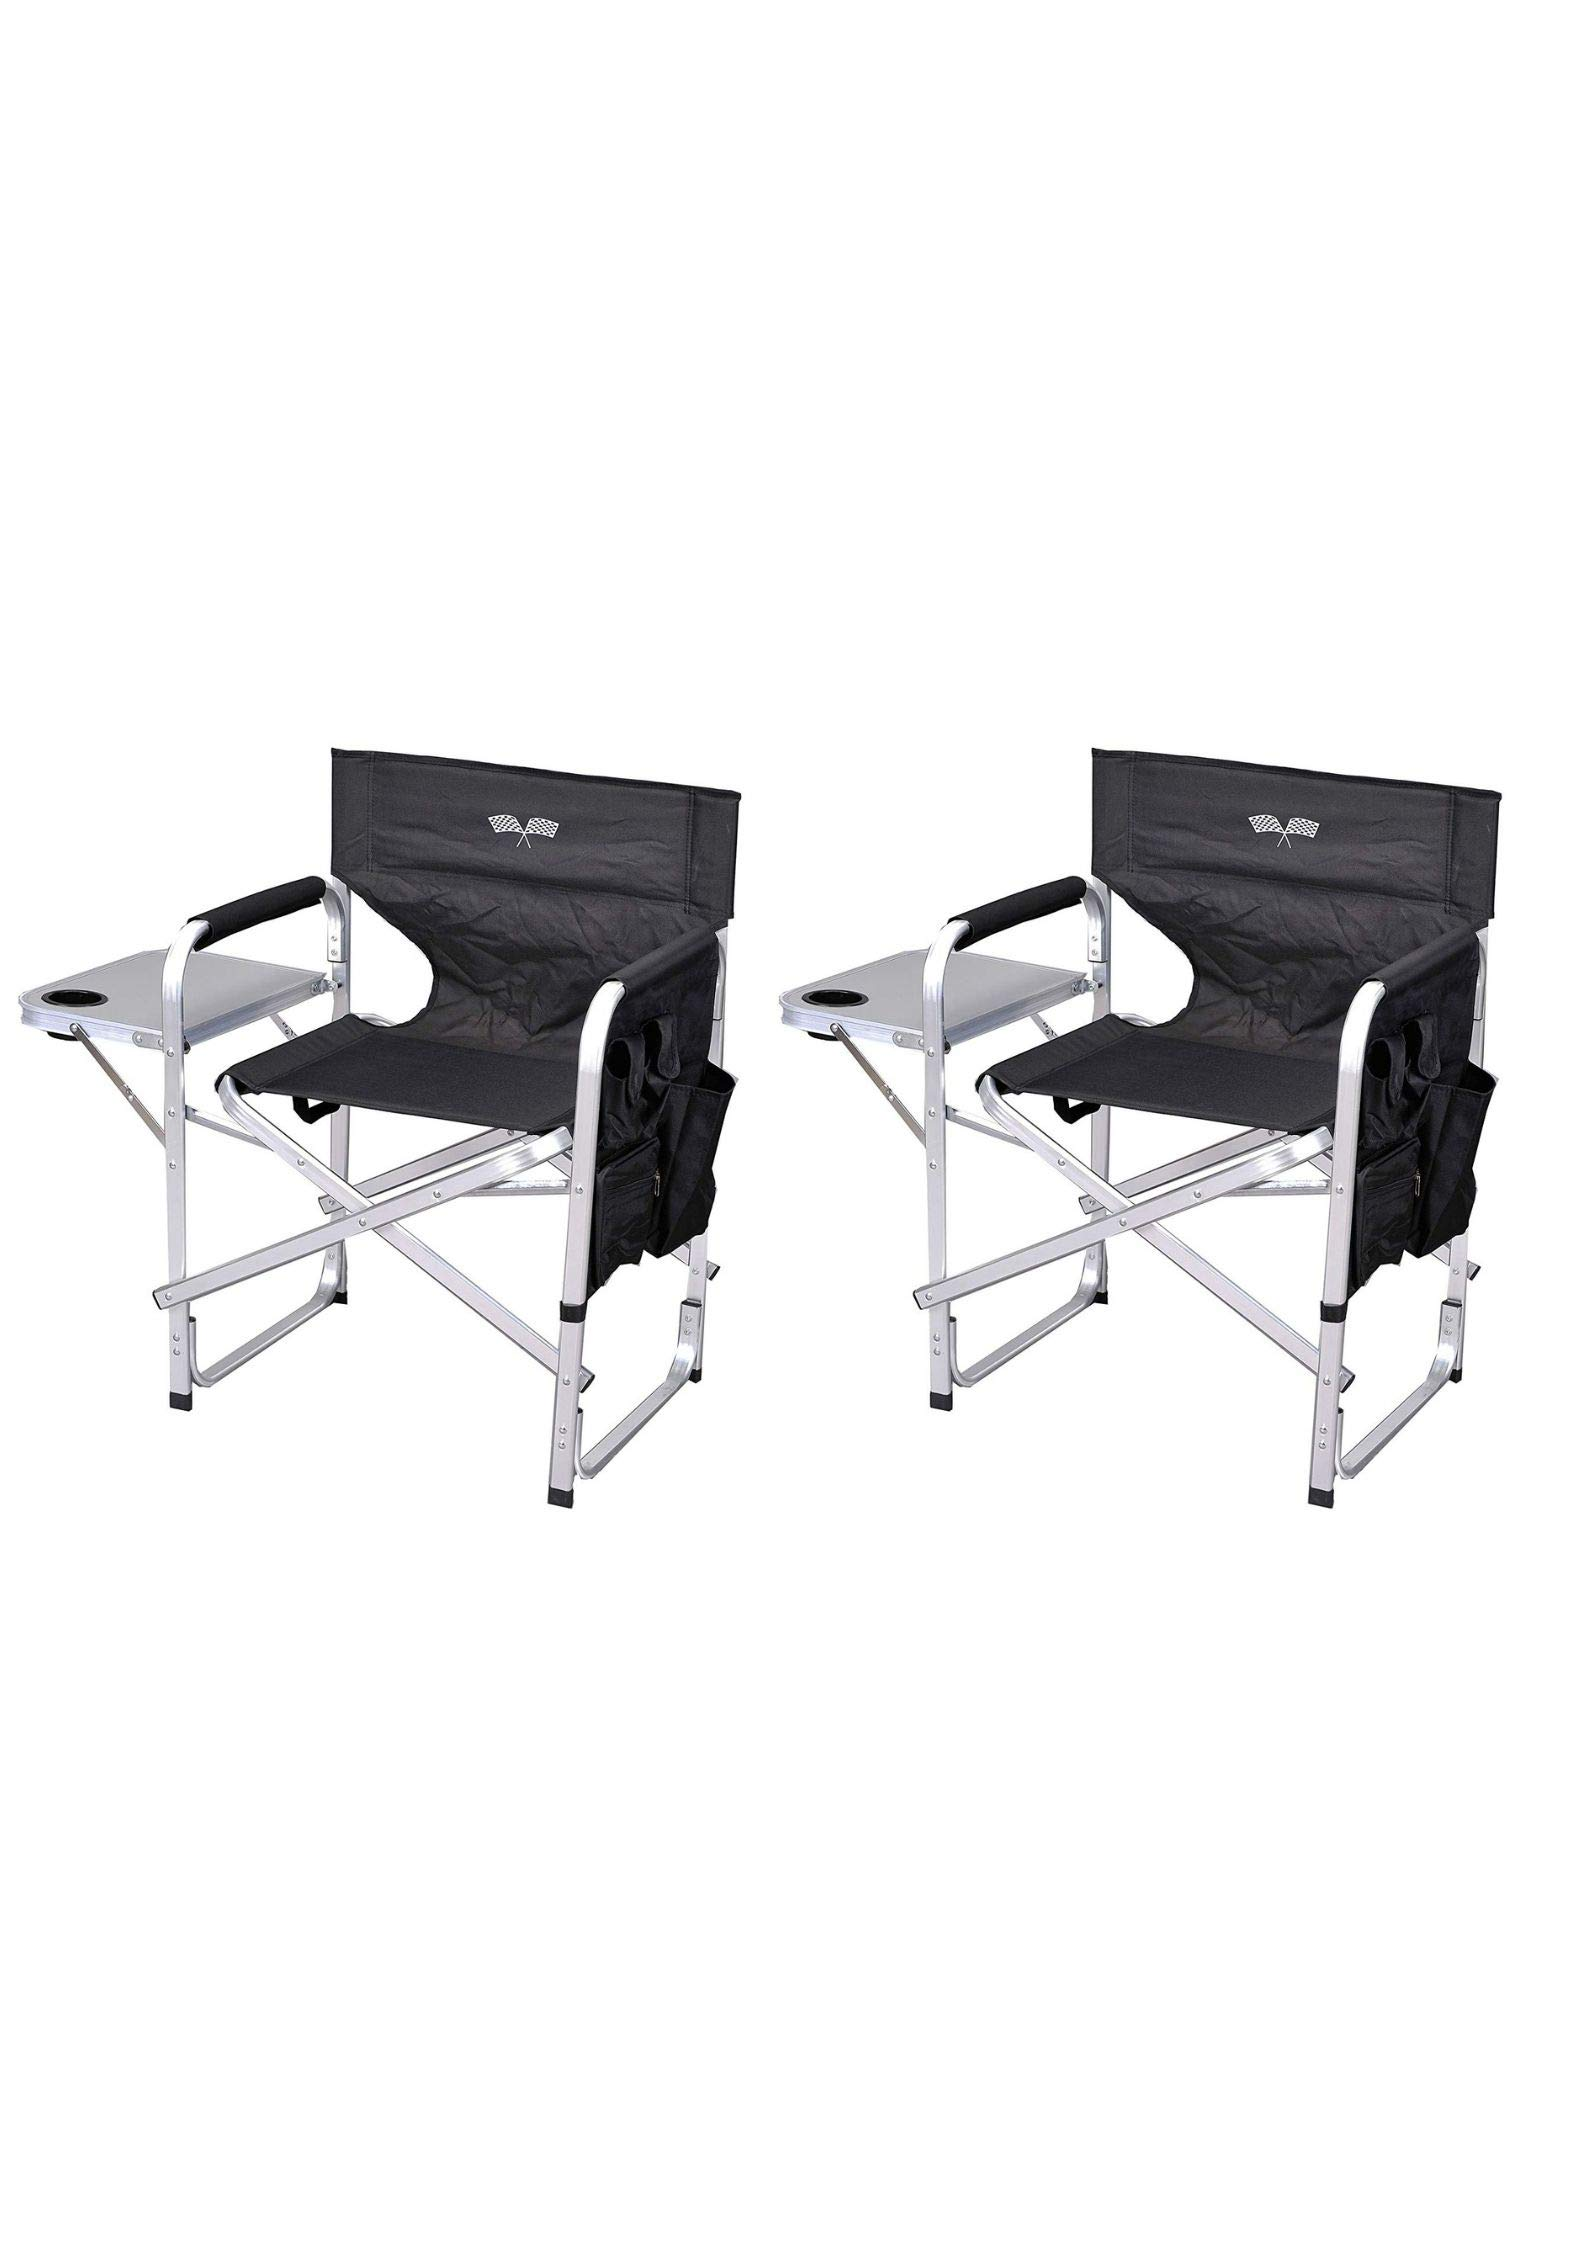 Stylish Camping Outdoor Folding Director's Chair w/Full Back - (Black/Flag/Pack of 2)